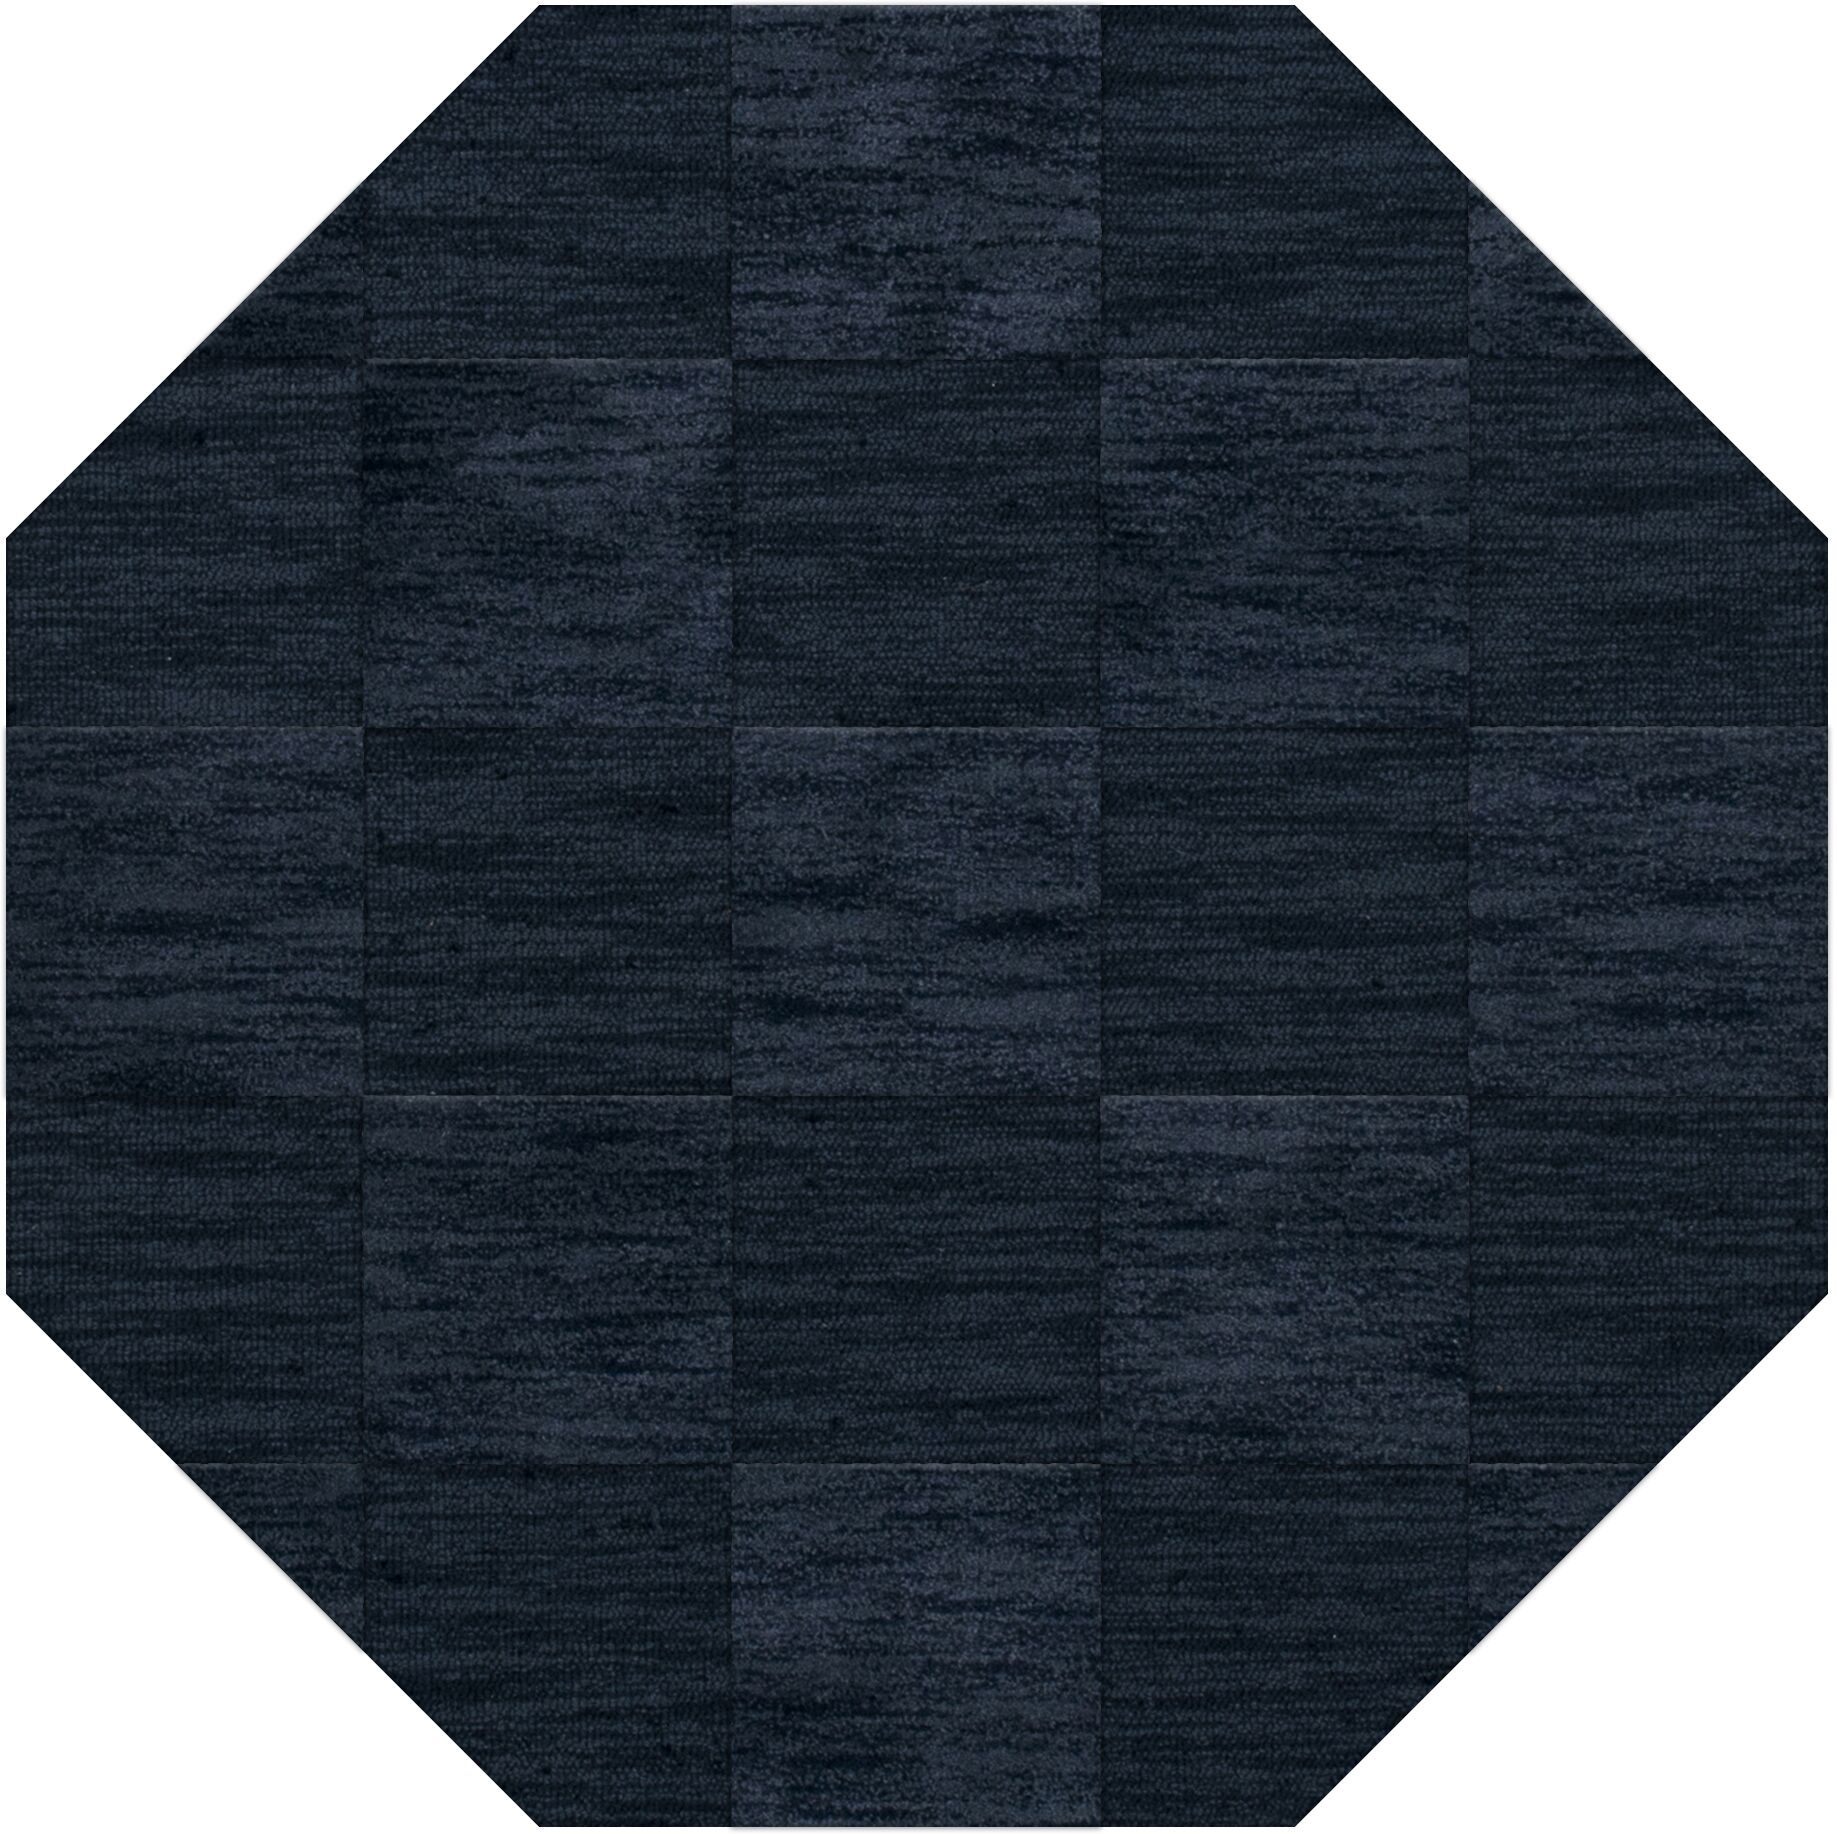 Dover Tufted Wool Navy Area Rug Rug Size: Octagon 6'